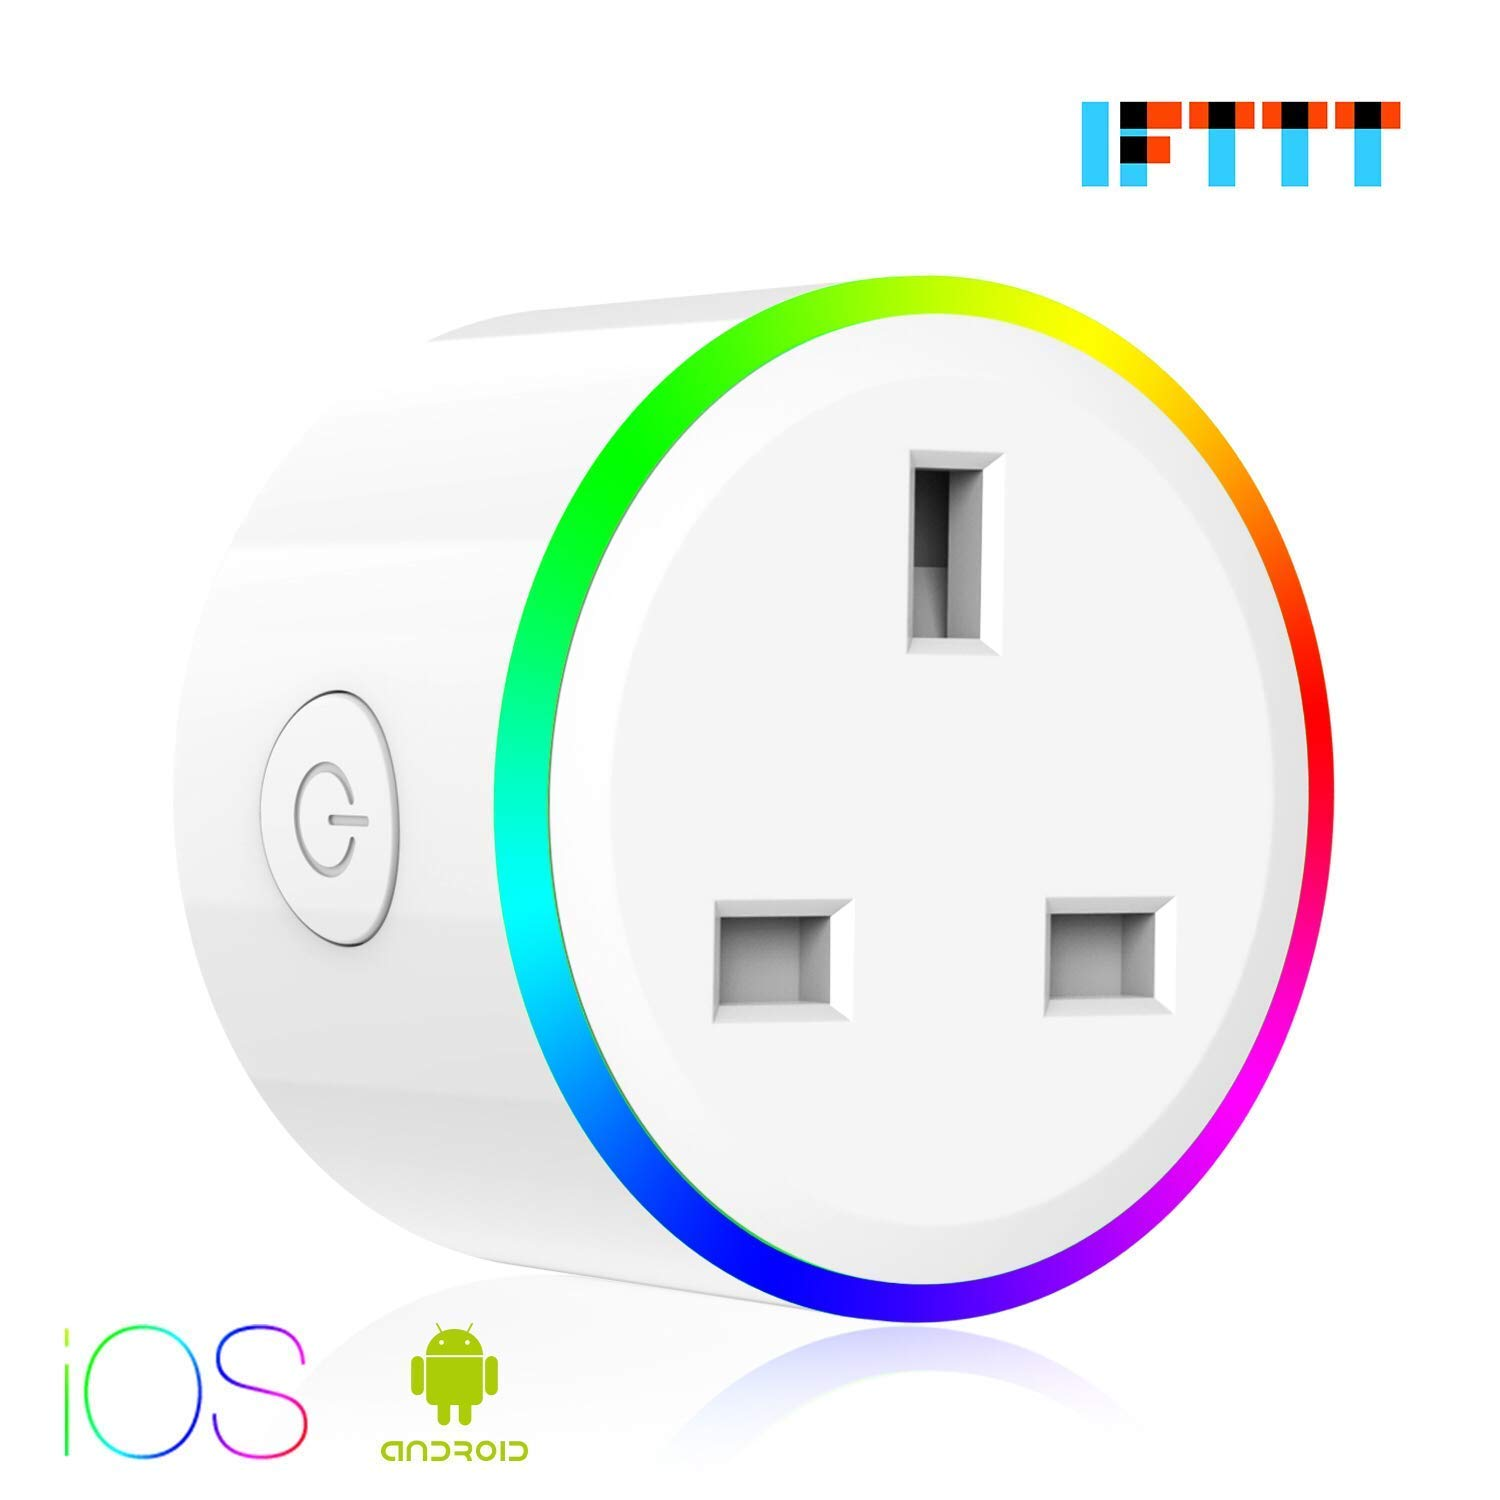 KUSSN WiFi Smart Plug, Mini Outlet Smart Socket, Works with  Alexa Google Home and IFTTT, Voice Control,Timing Function Energy Saving Assistant APP Remote Control, RGB 8 Scene mode. (2 Packs) XSZN